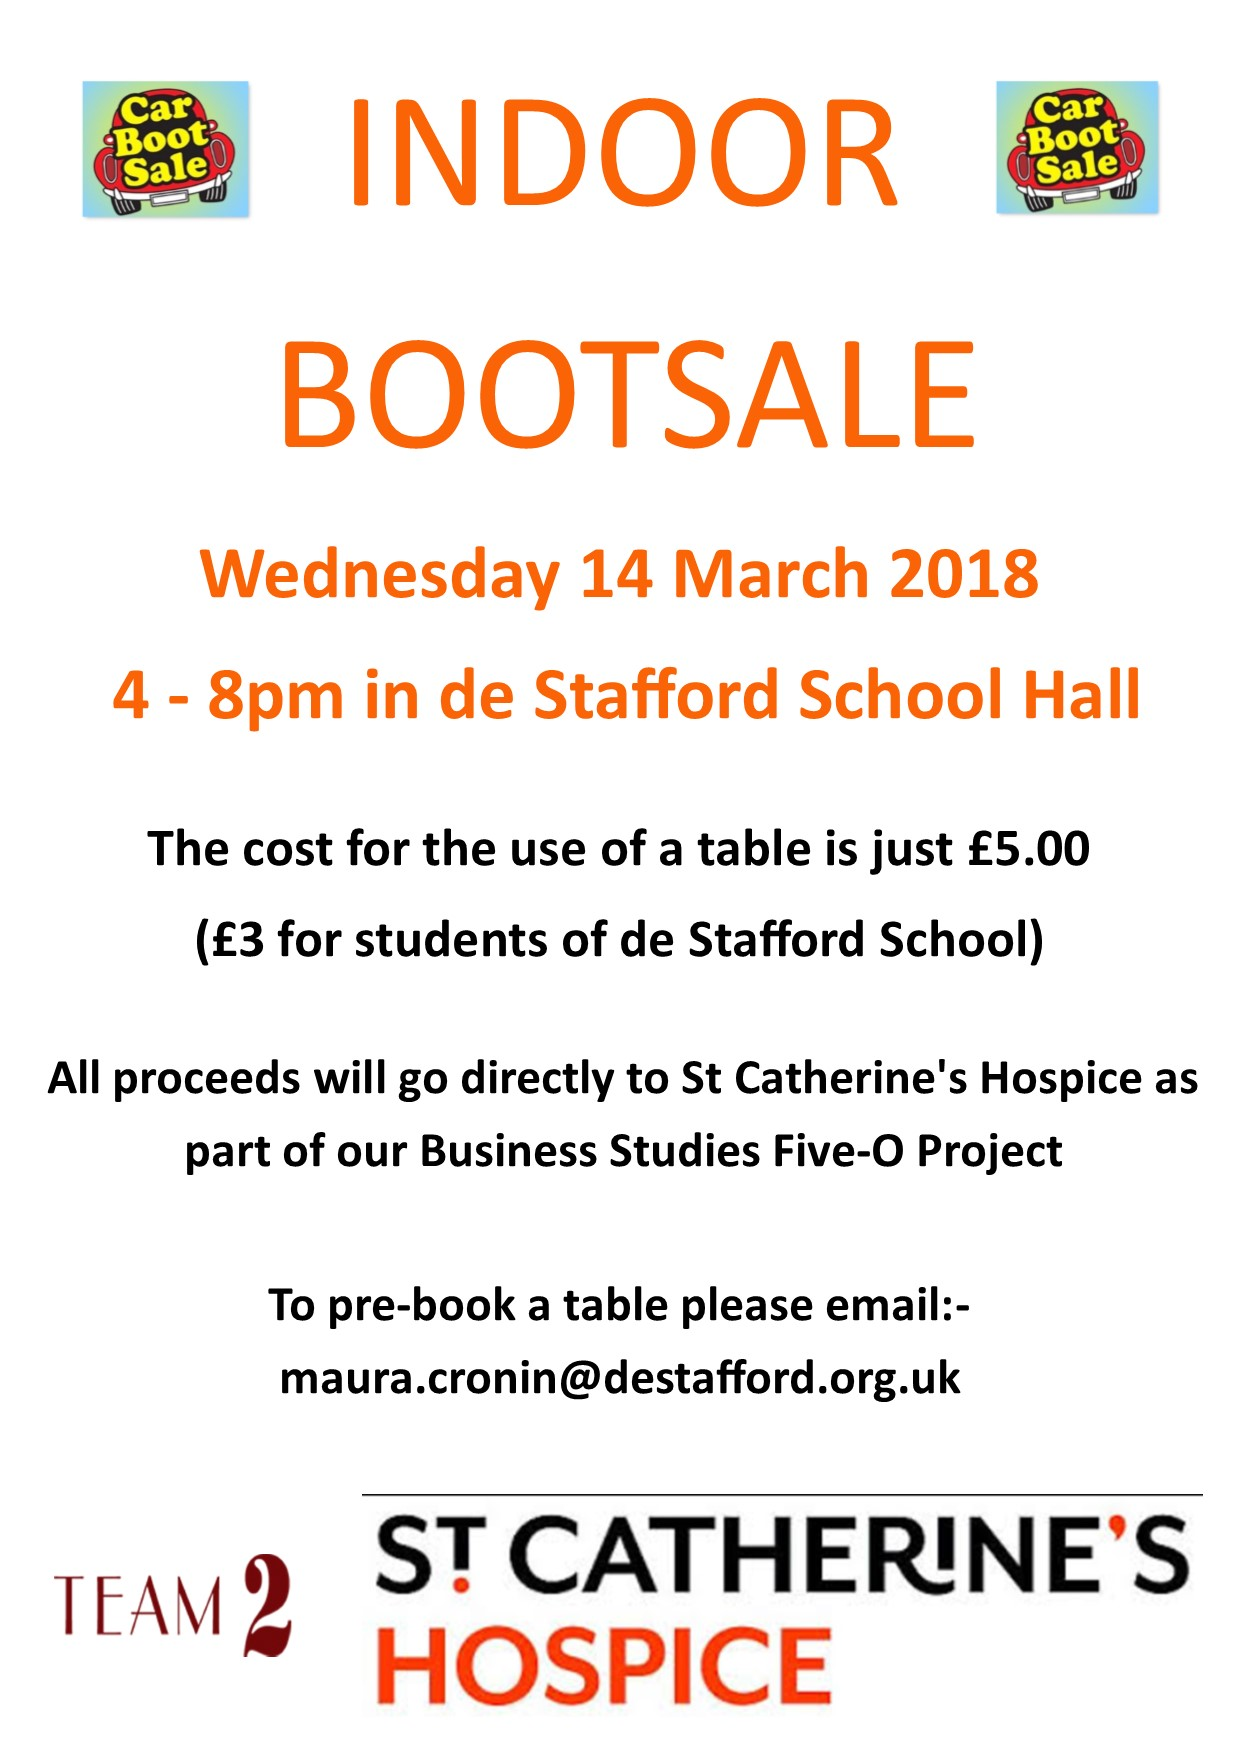 Five O Project   Bootsale   14 March 2018